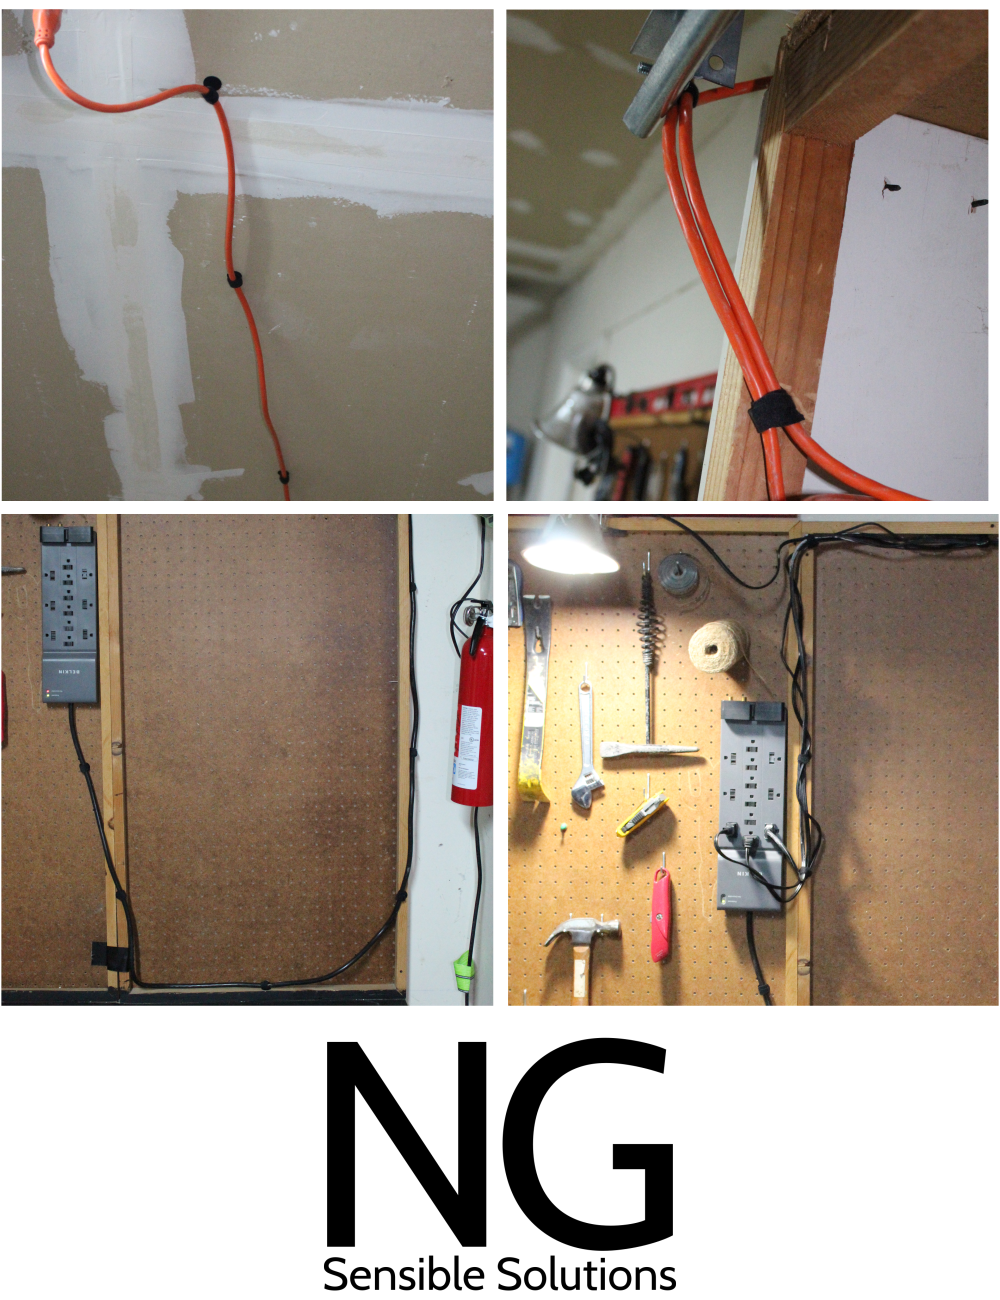 ng-sensible-solutions-cable-management-system-organize-and-mount-power-strips-and-cables-tool-free-have-power